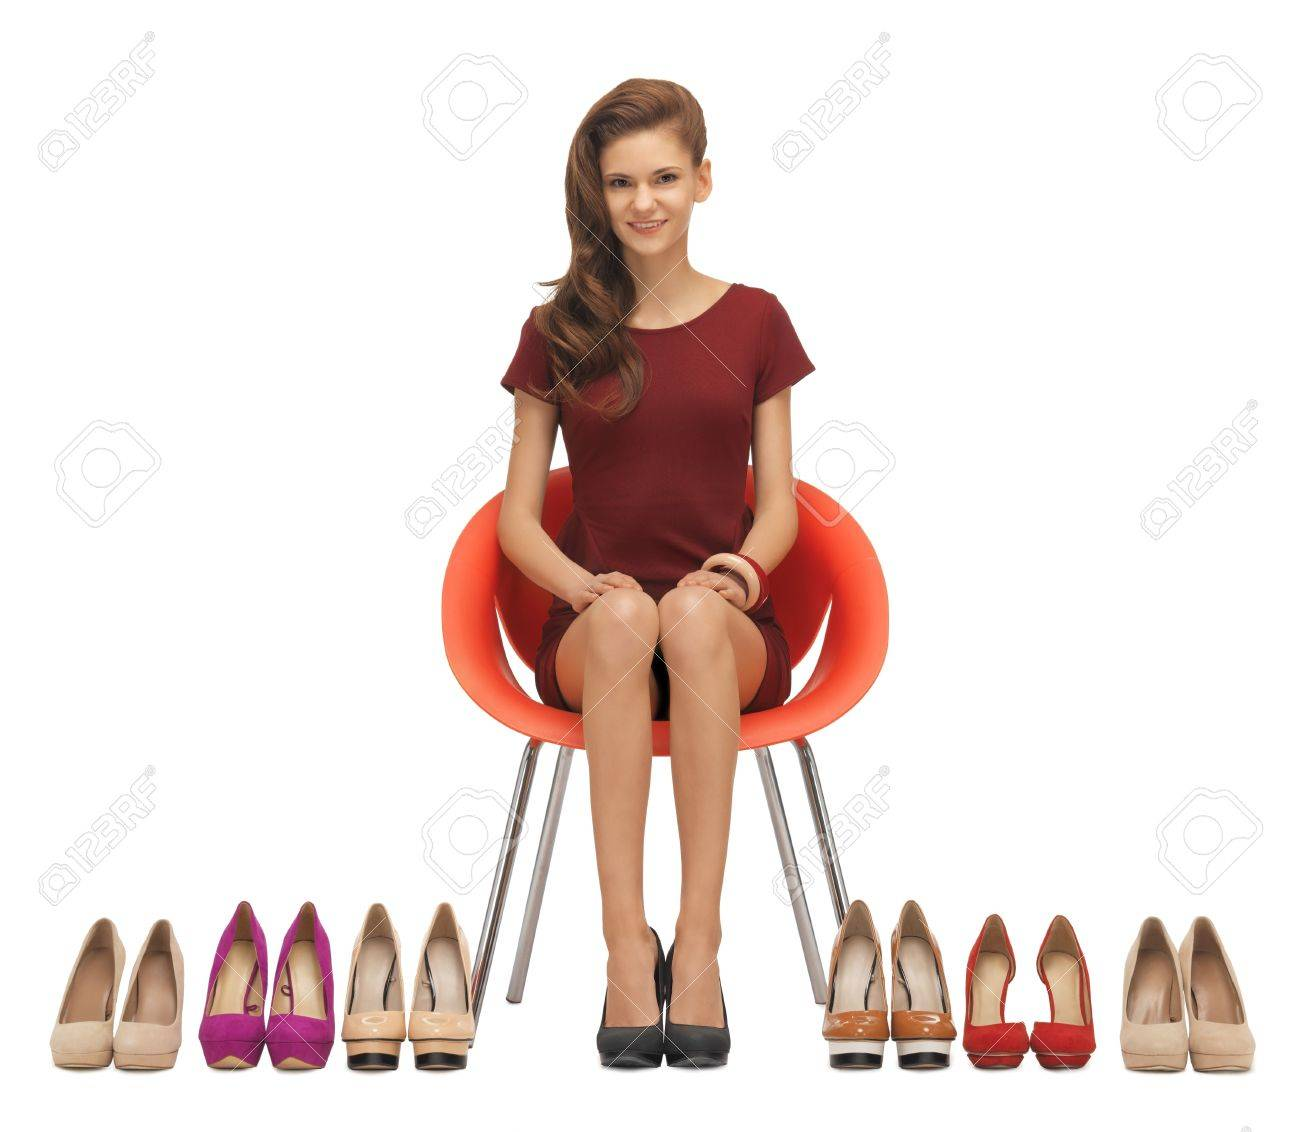 Red Dress Shoes For Girls